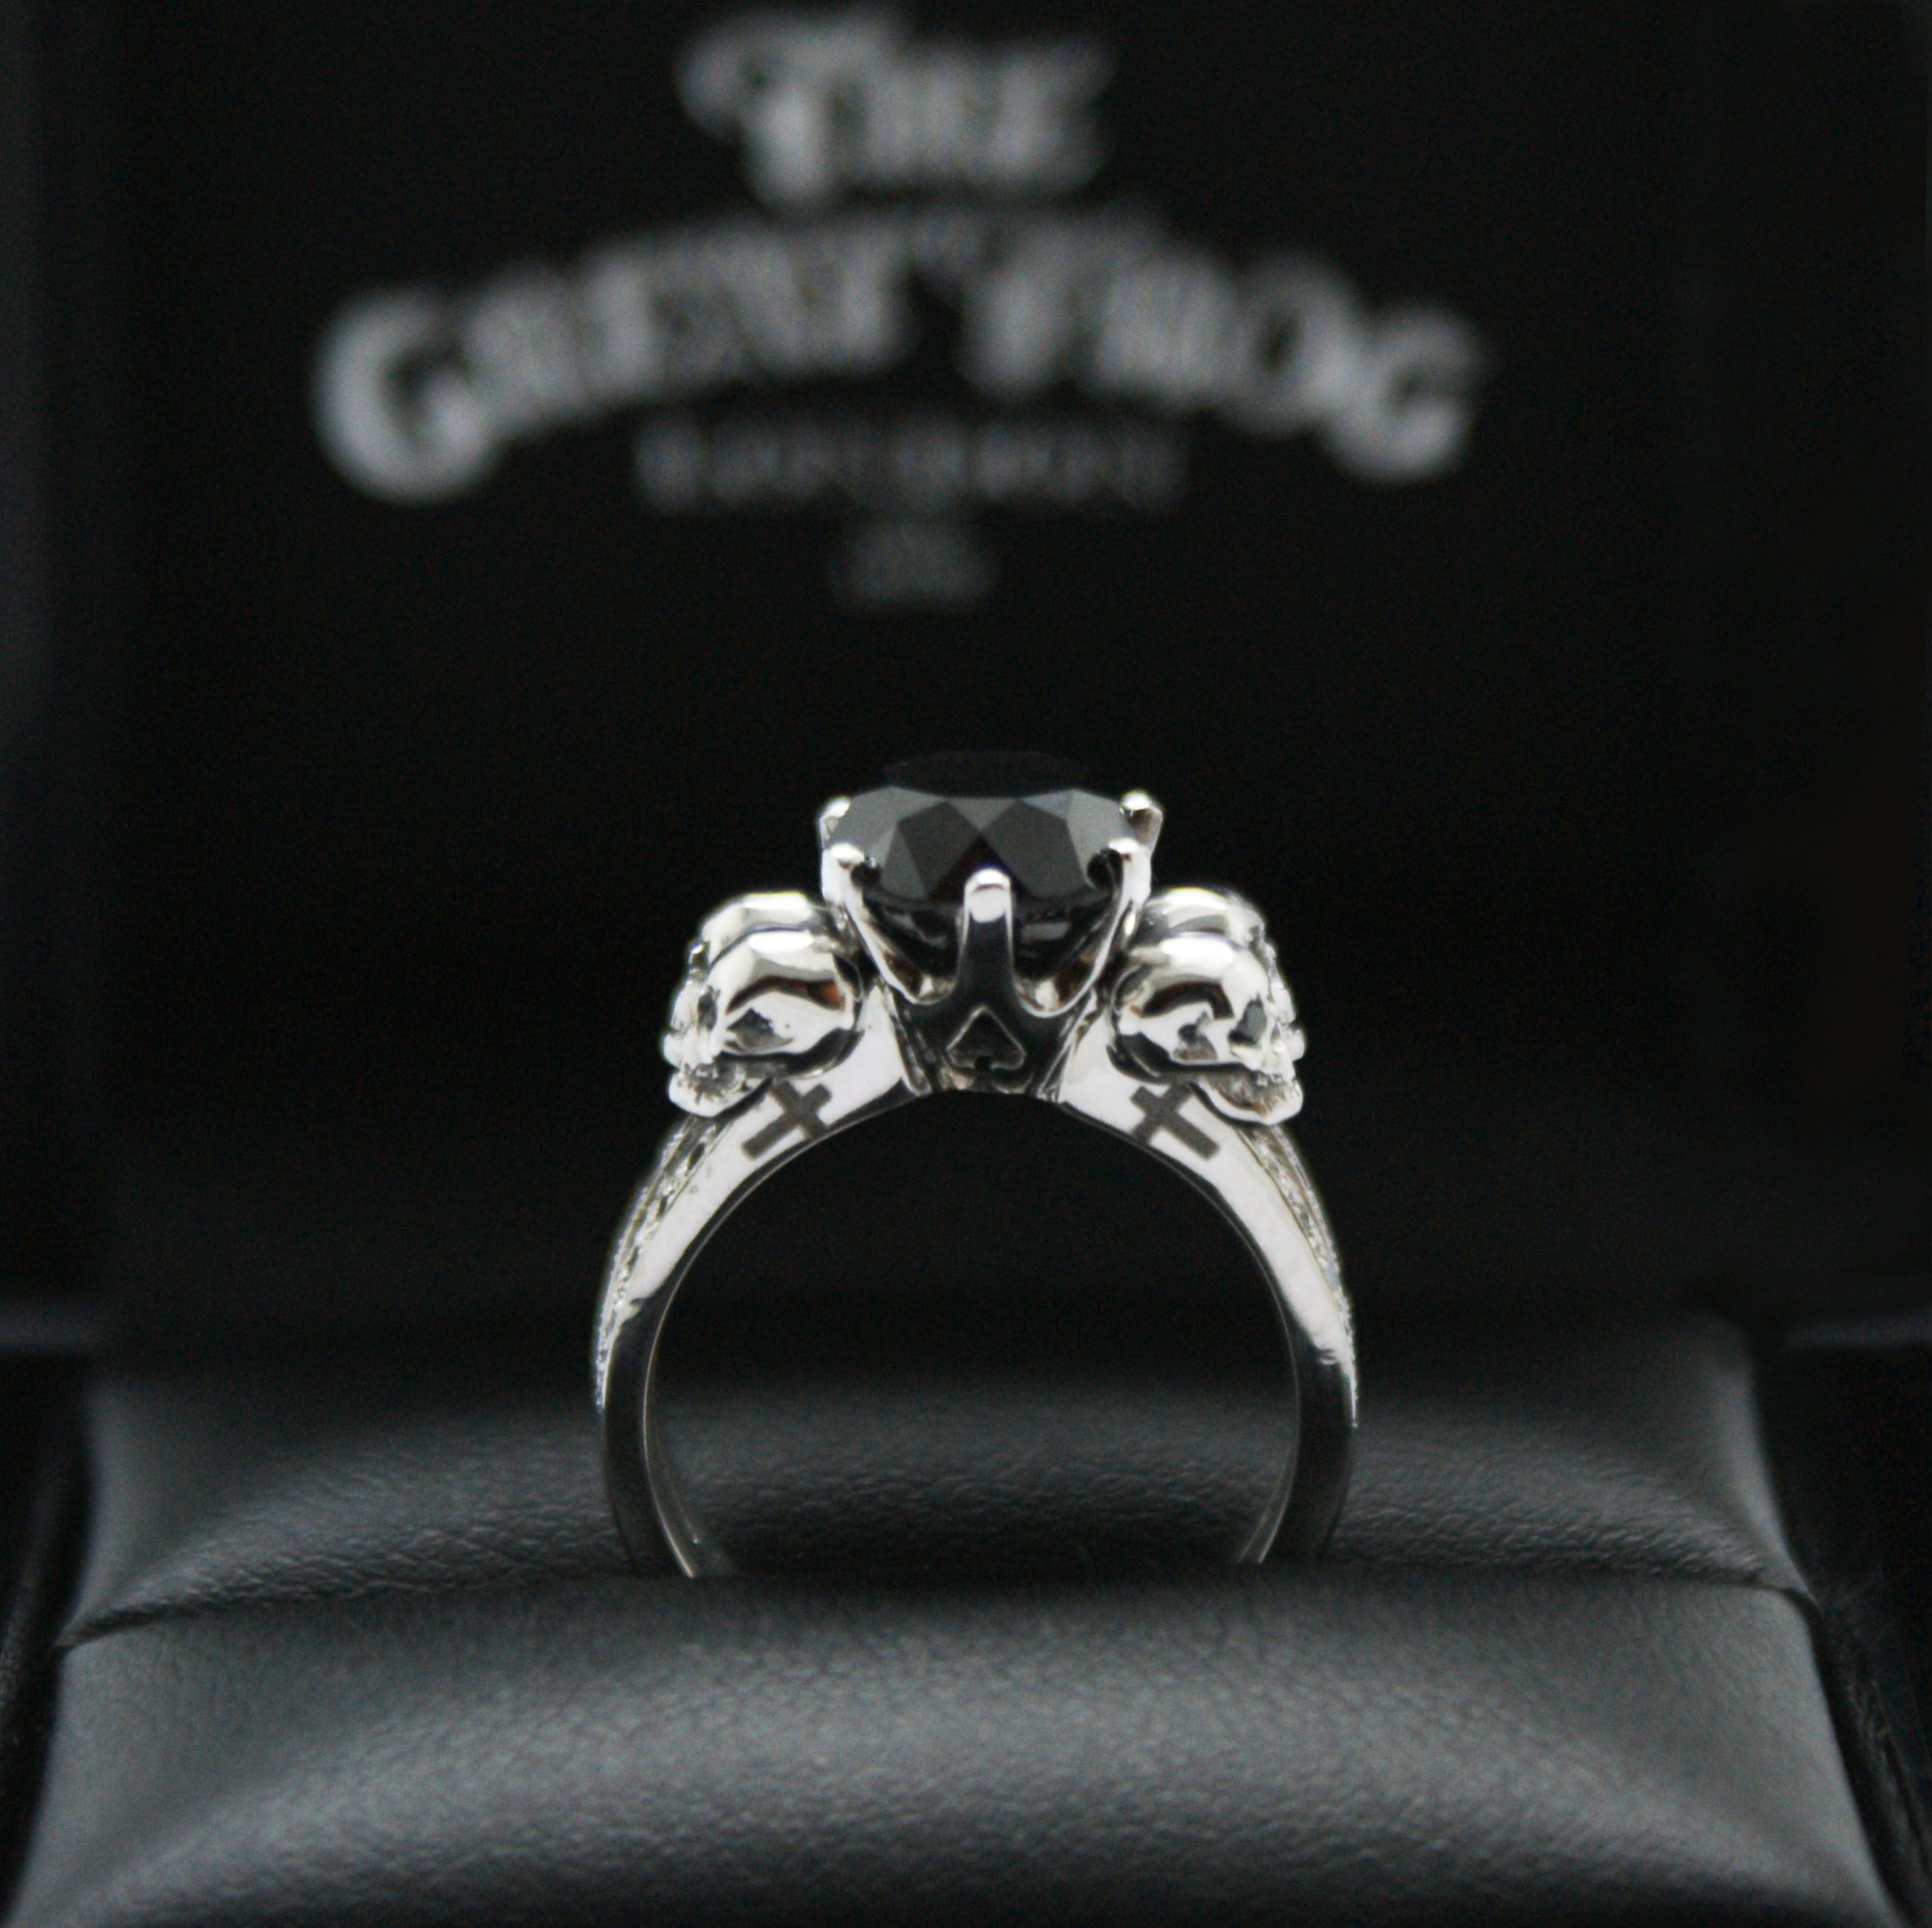 Kat Von D's Engagement Ring The Great Froglondon Did Such A Awesome Job On